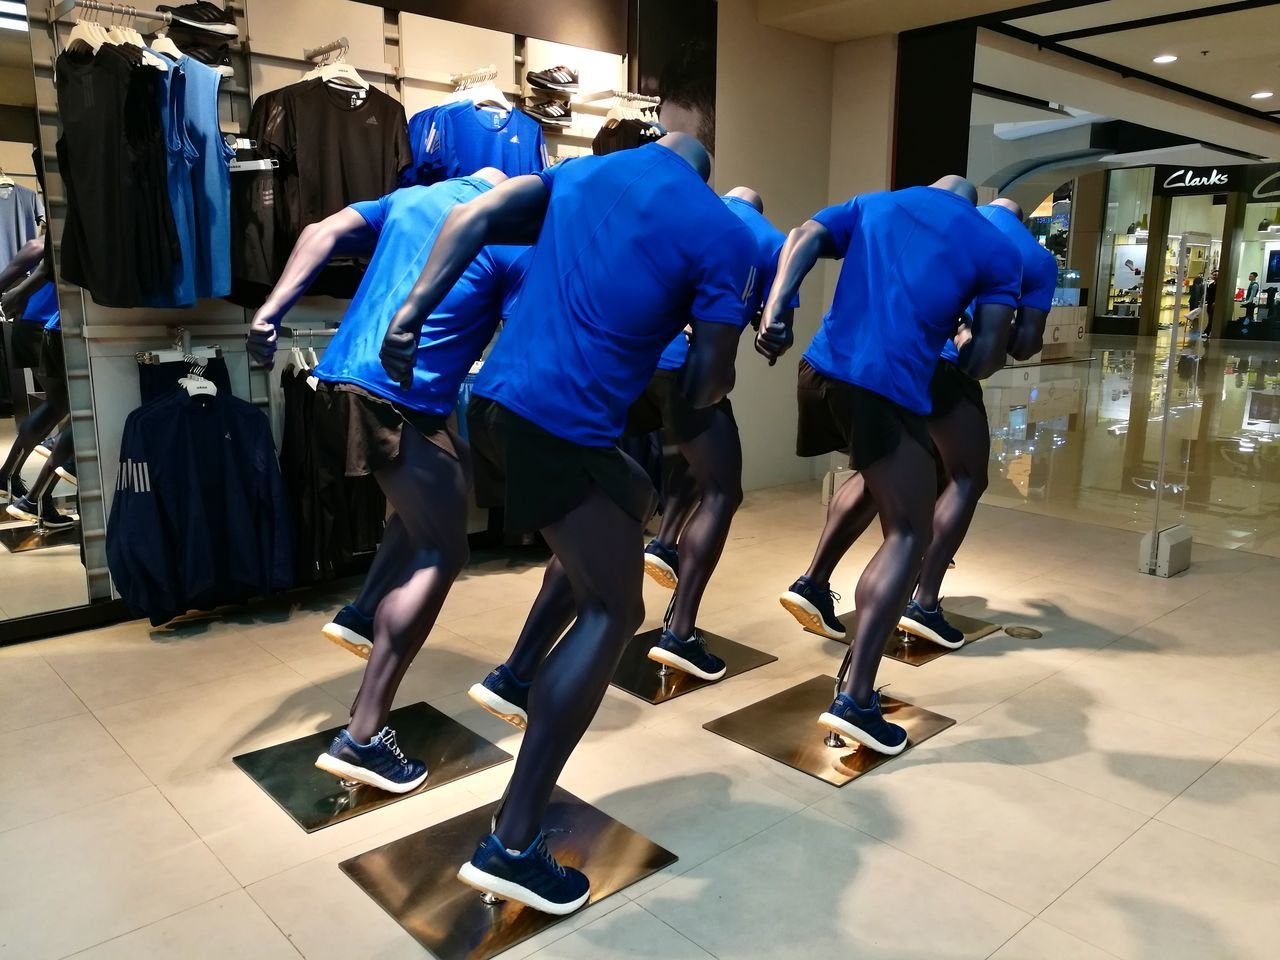 Headless army Headless Army Active Lifestyle  Activewear Athlete Fit Running Run Mannequin Decoration Retail  Retail Display Retail Store Mall EyeEmNewHere